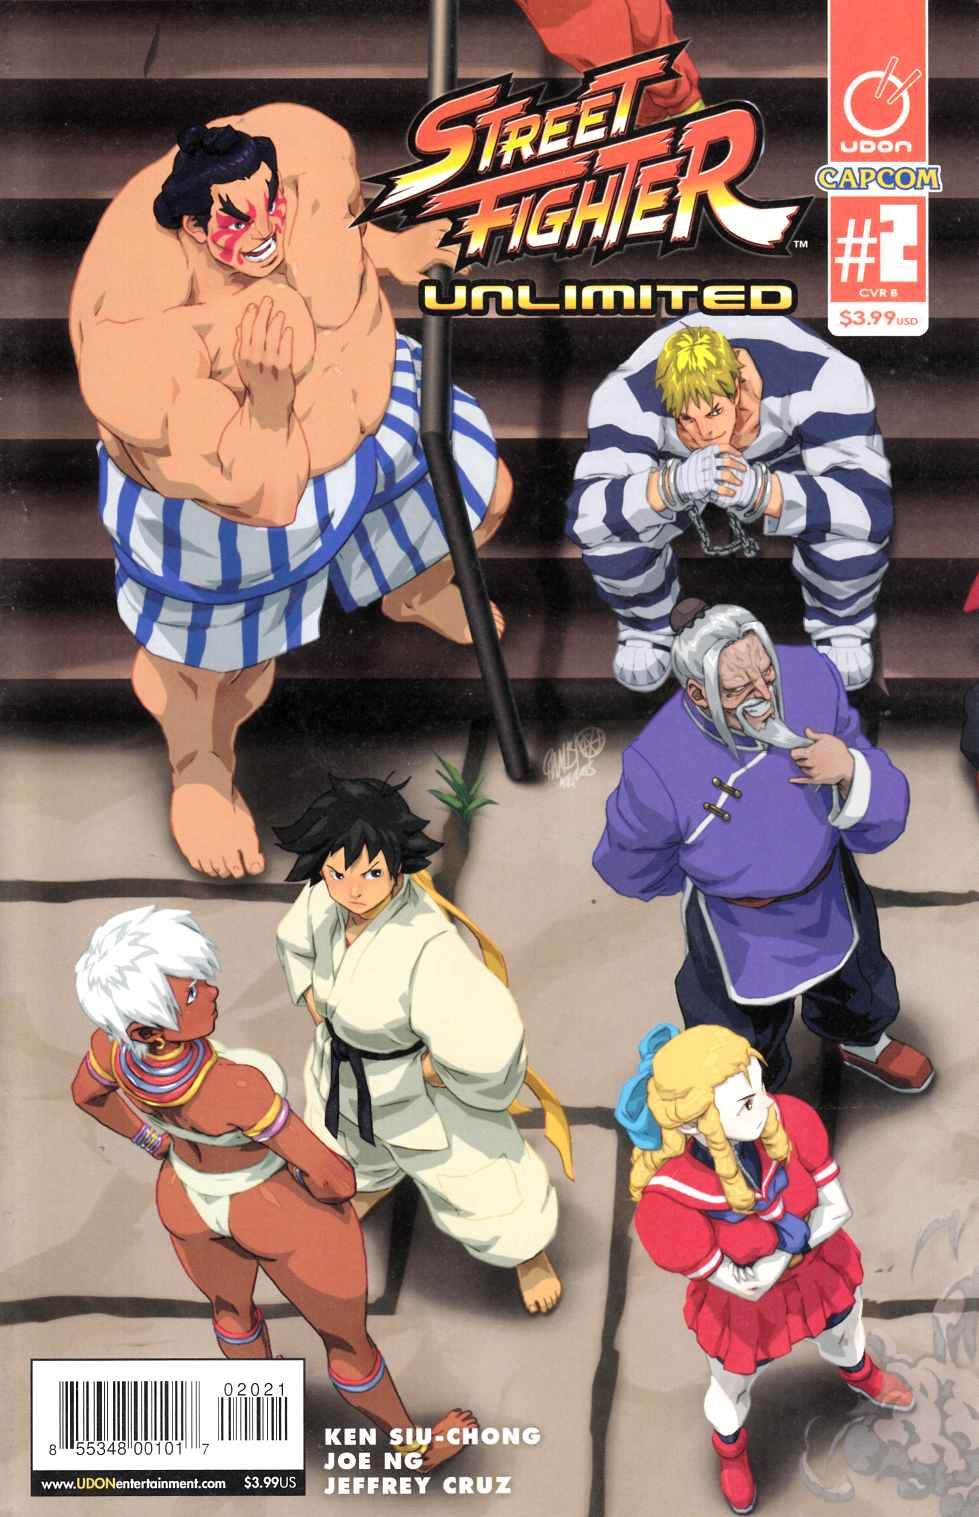 Street Fighter Unlimited #2 Cover B- Cruz Ultra Jam [Udon Comic]